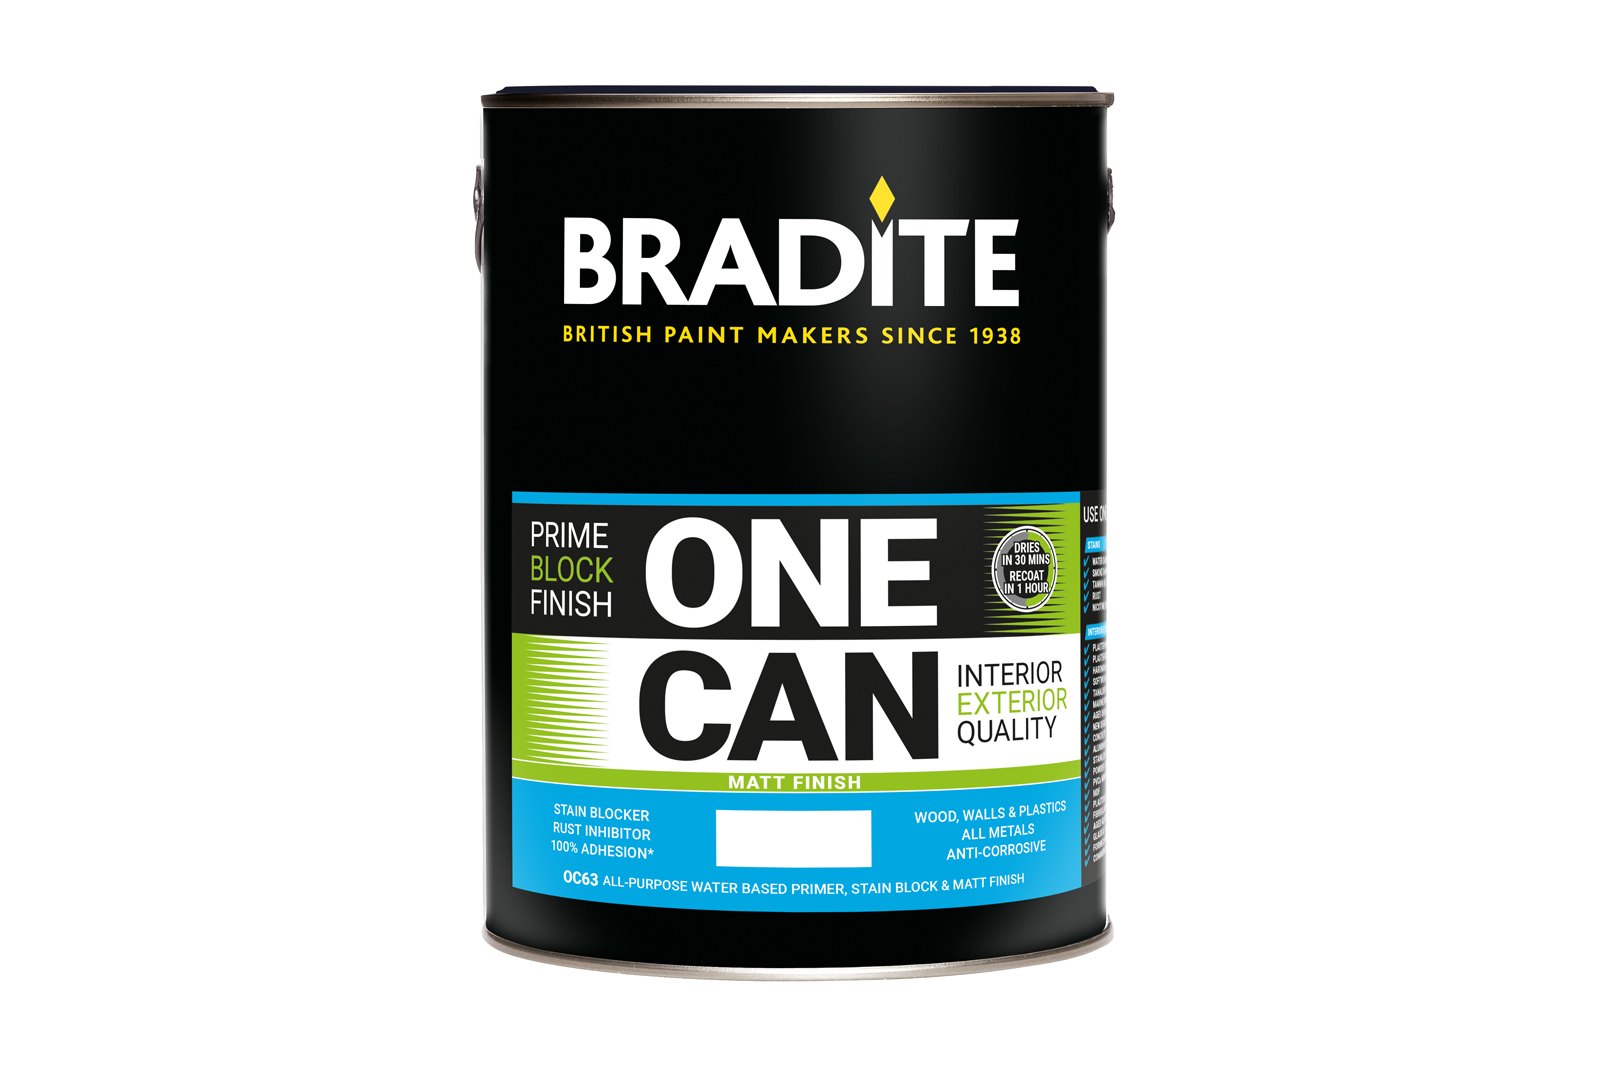 10 Bradite paint cans to win